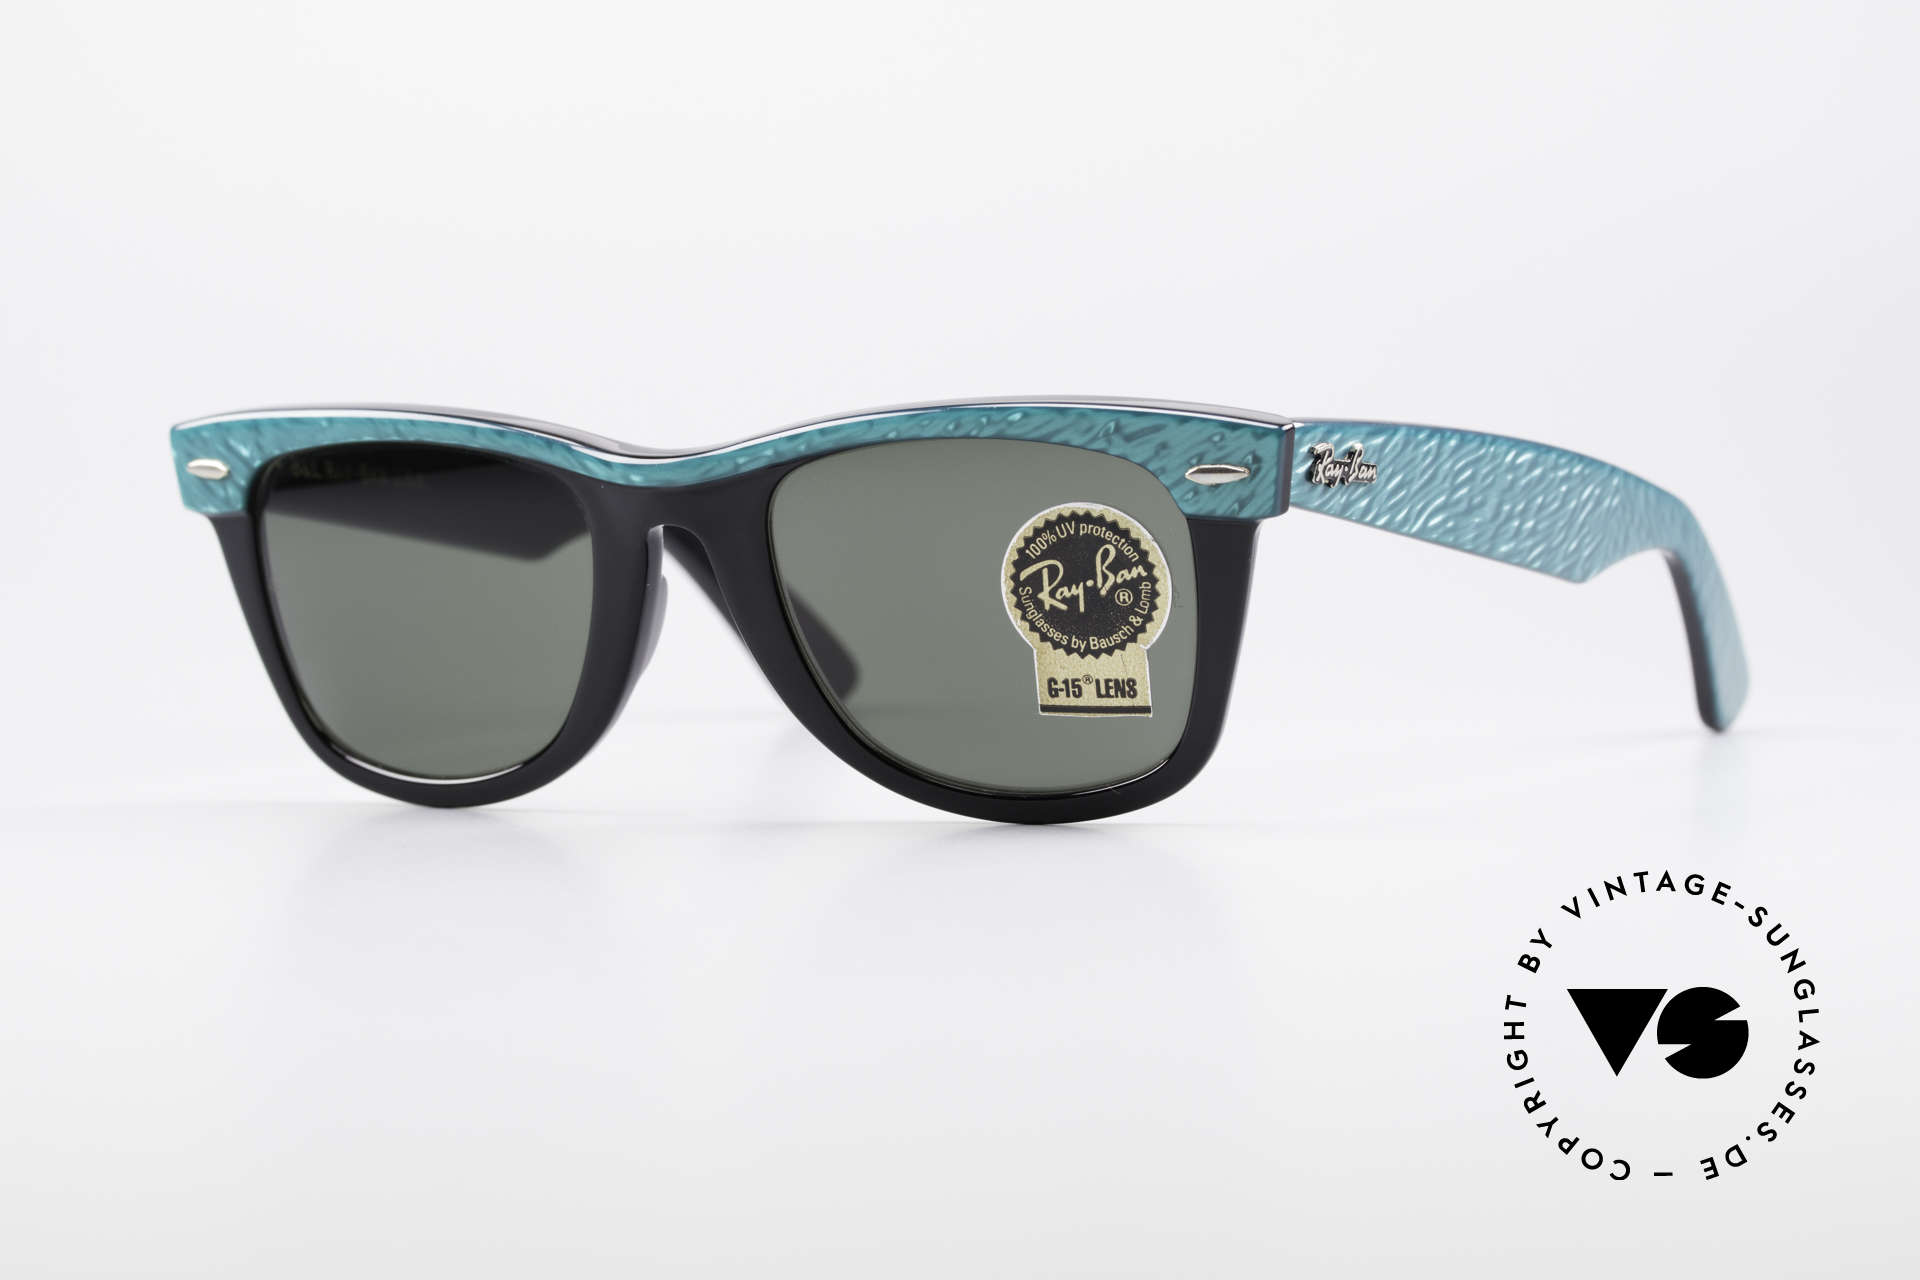 Ray Ban Wayfarer I Old 80's USA Sunglasses B&L, one of the downright classics of sunglass fashion, Made for Men and Women